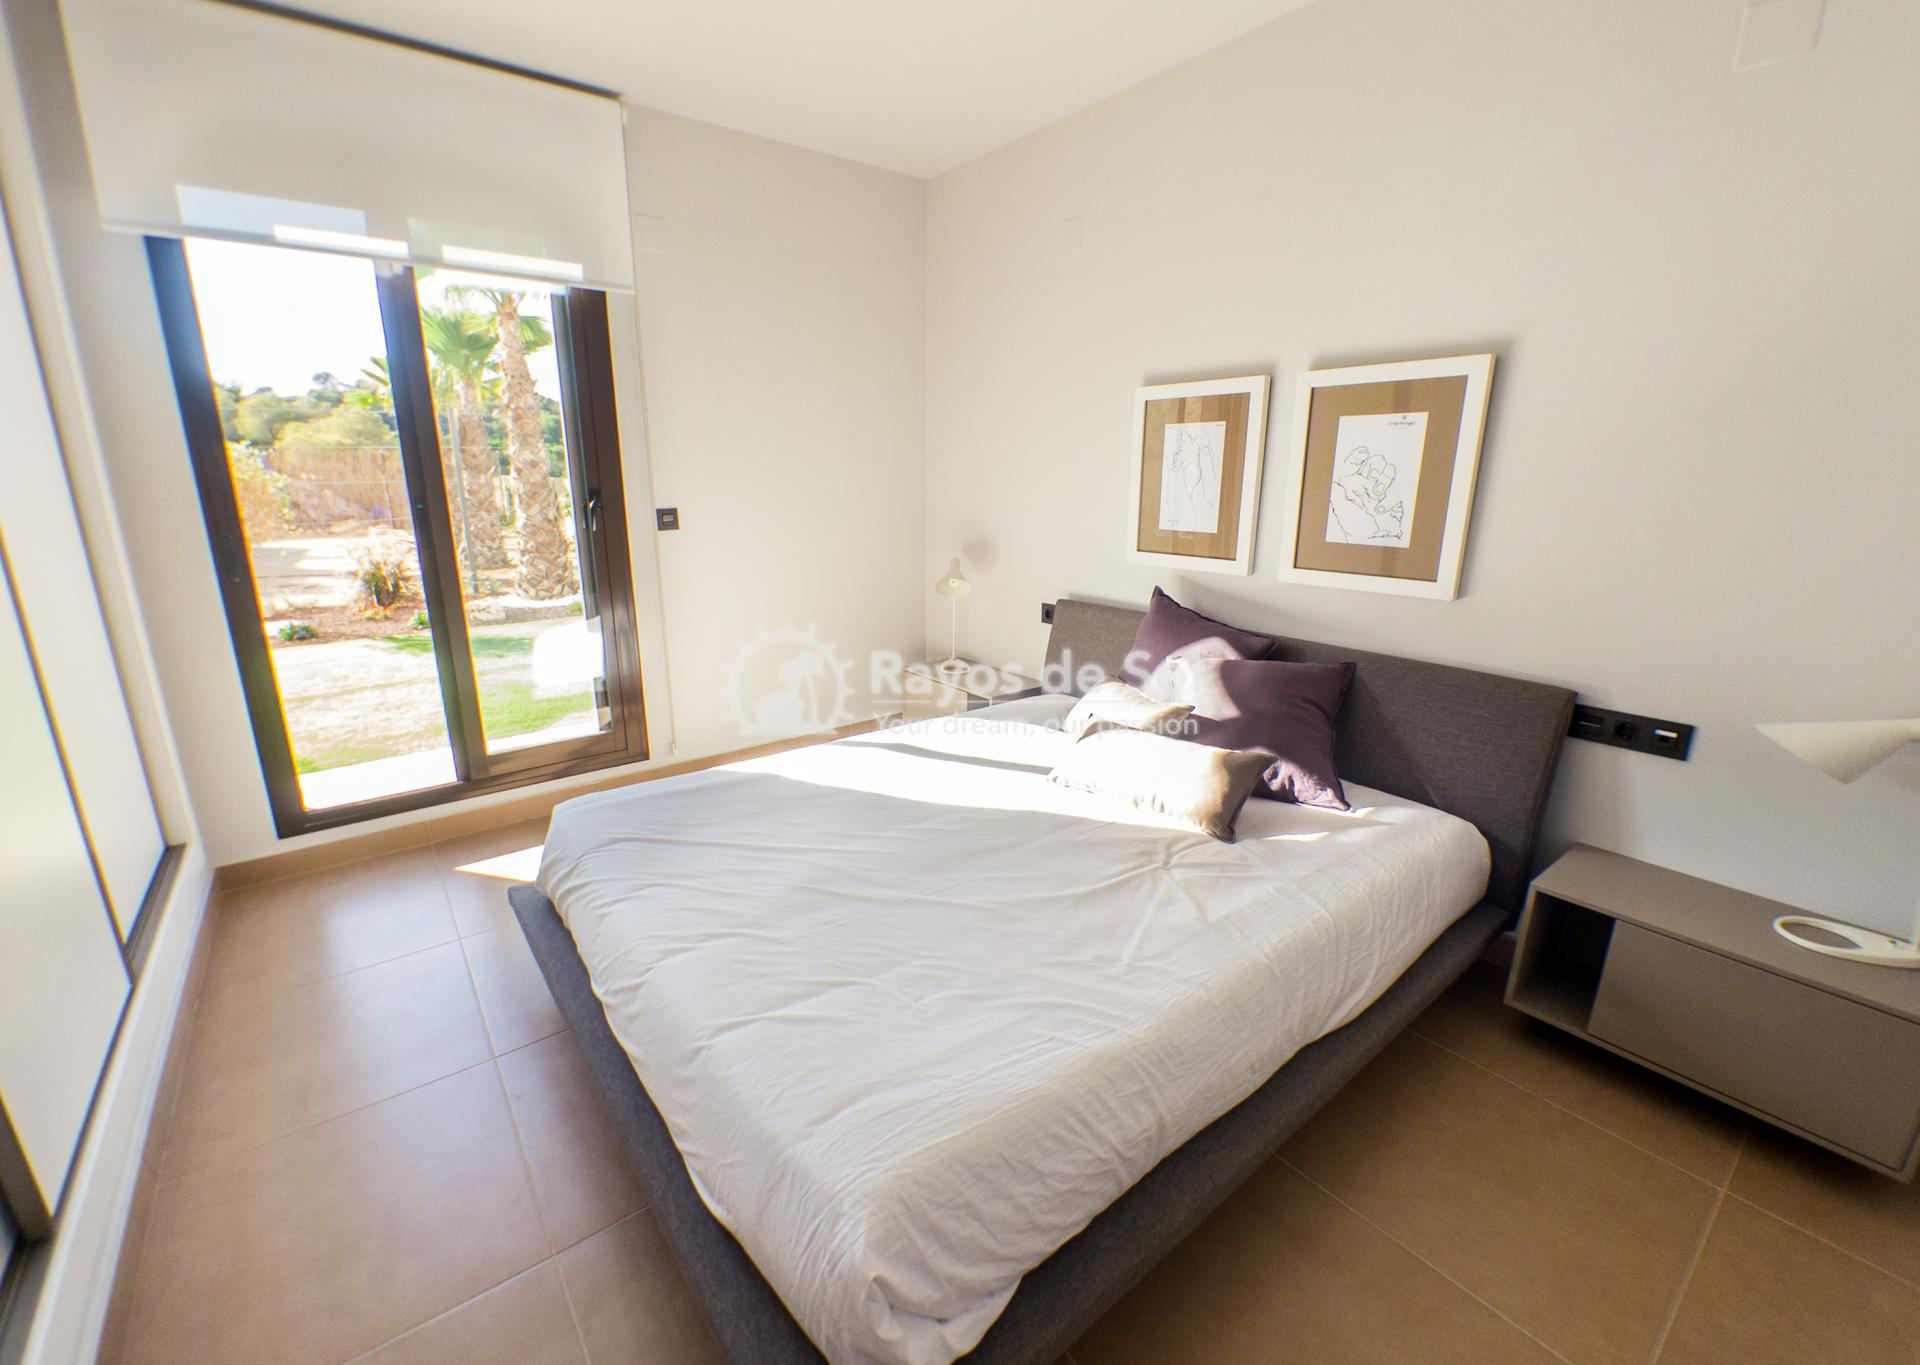 Golf apartment ground floor in Las Ramblas, Villamartin, Costa Blanca (VIPALO3-2B) - 15